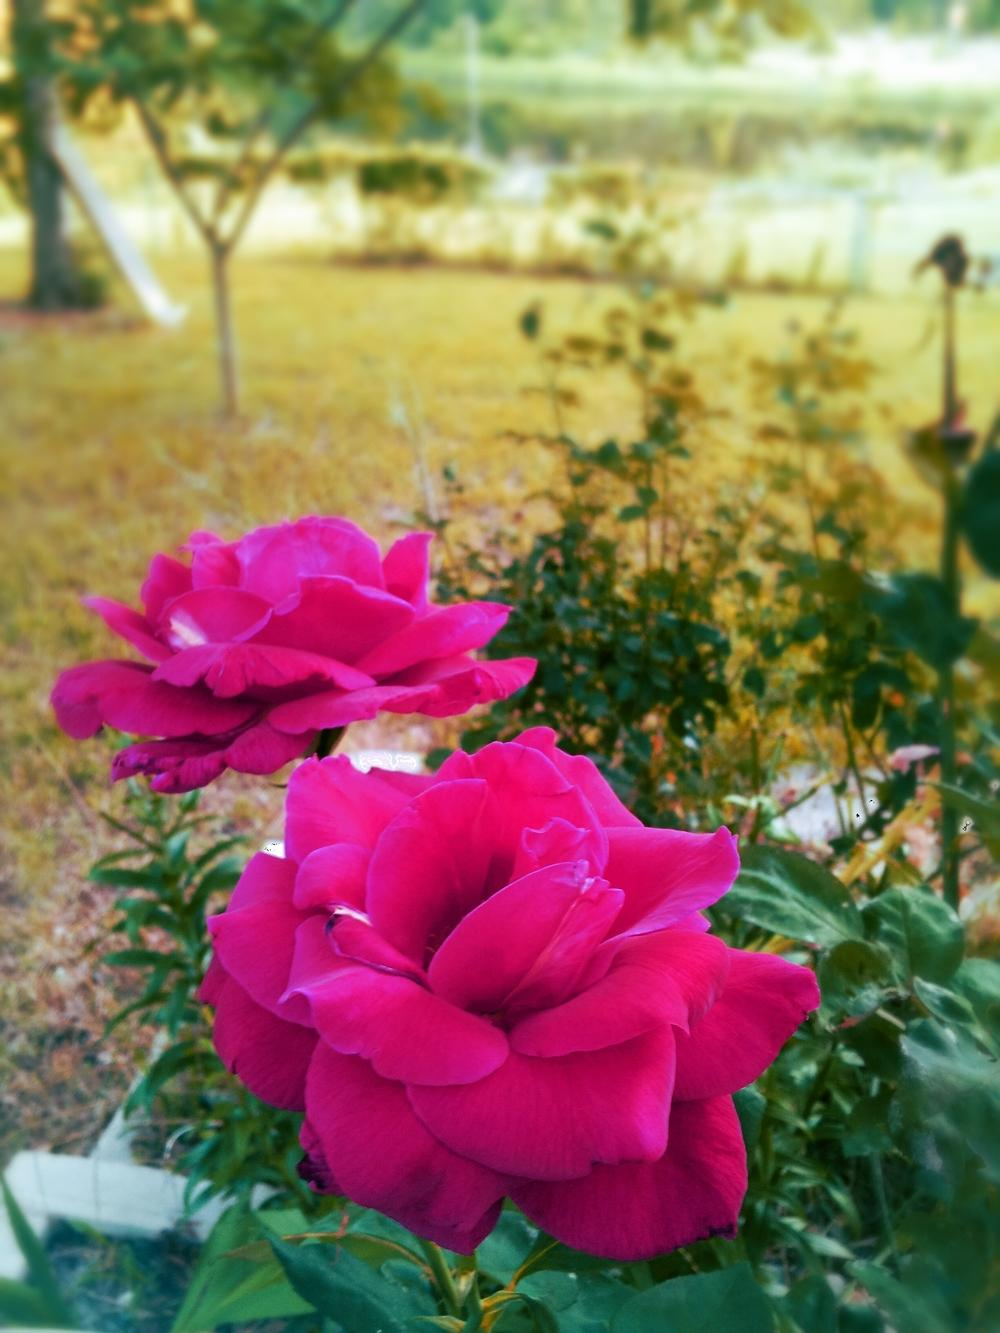 Photo of Roses (Rosa) uploaded by JamesAcclaims